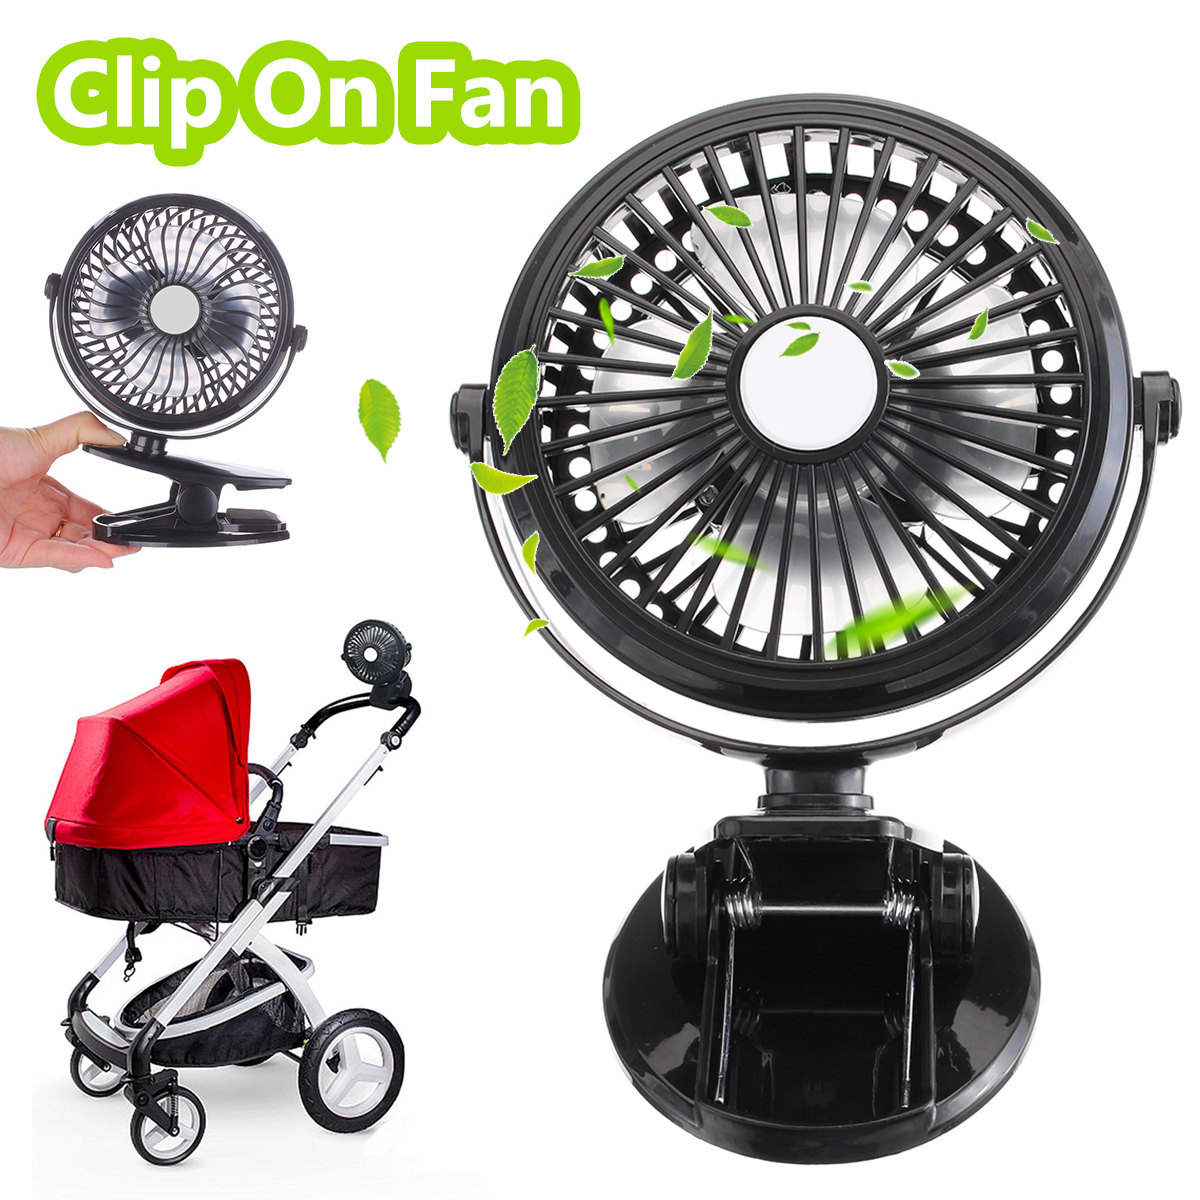 Mini Mute Clip Fan Rechargeable Silent 4 Blades Baby Stroller Fans Portable Air Cooling 3 Speeds Desk USB Fan with USB Output Вентилятор